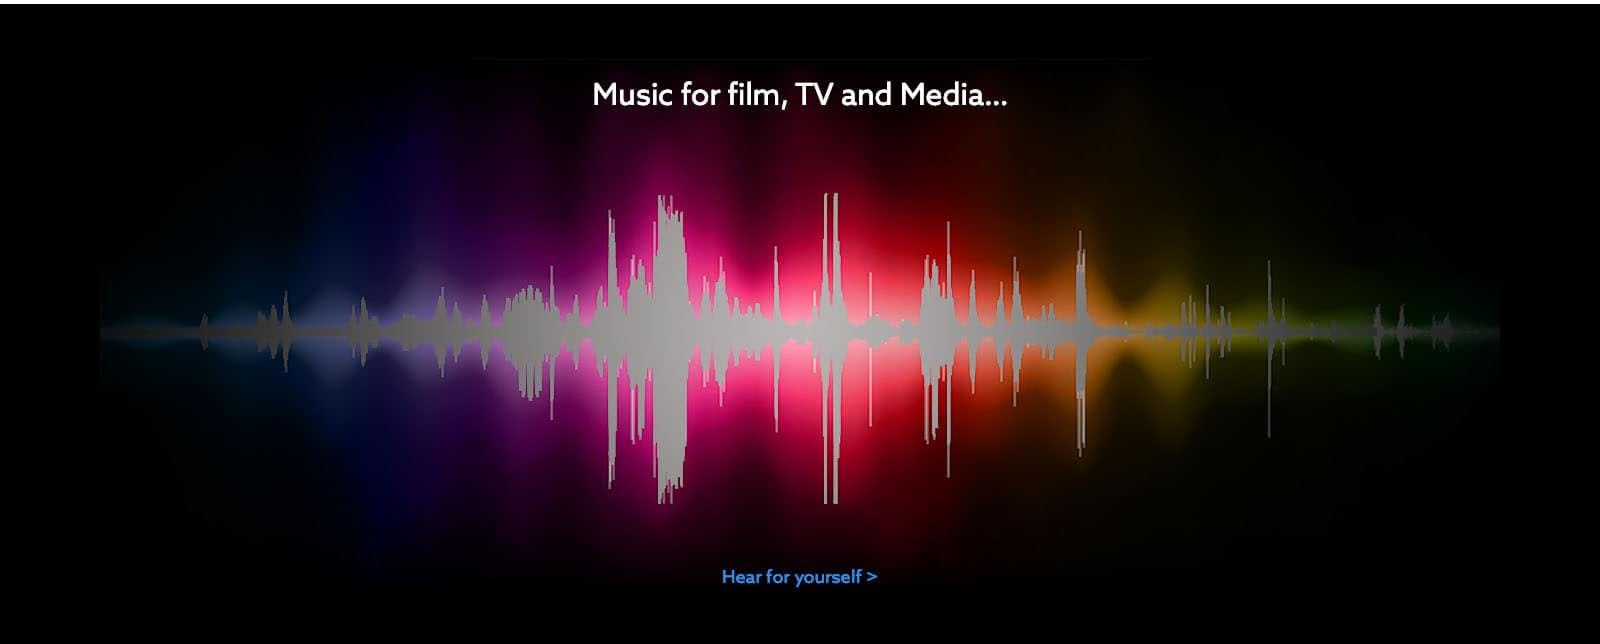 Music for film, TV and media from Jeff Meegan and David Tobin